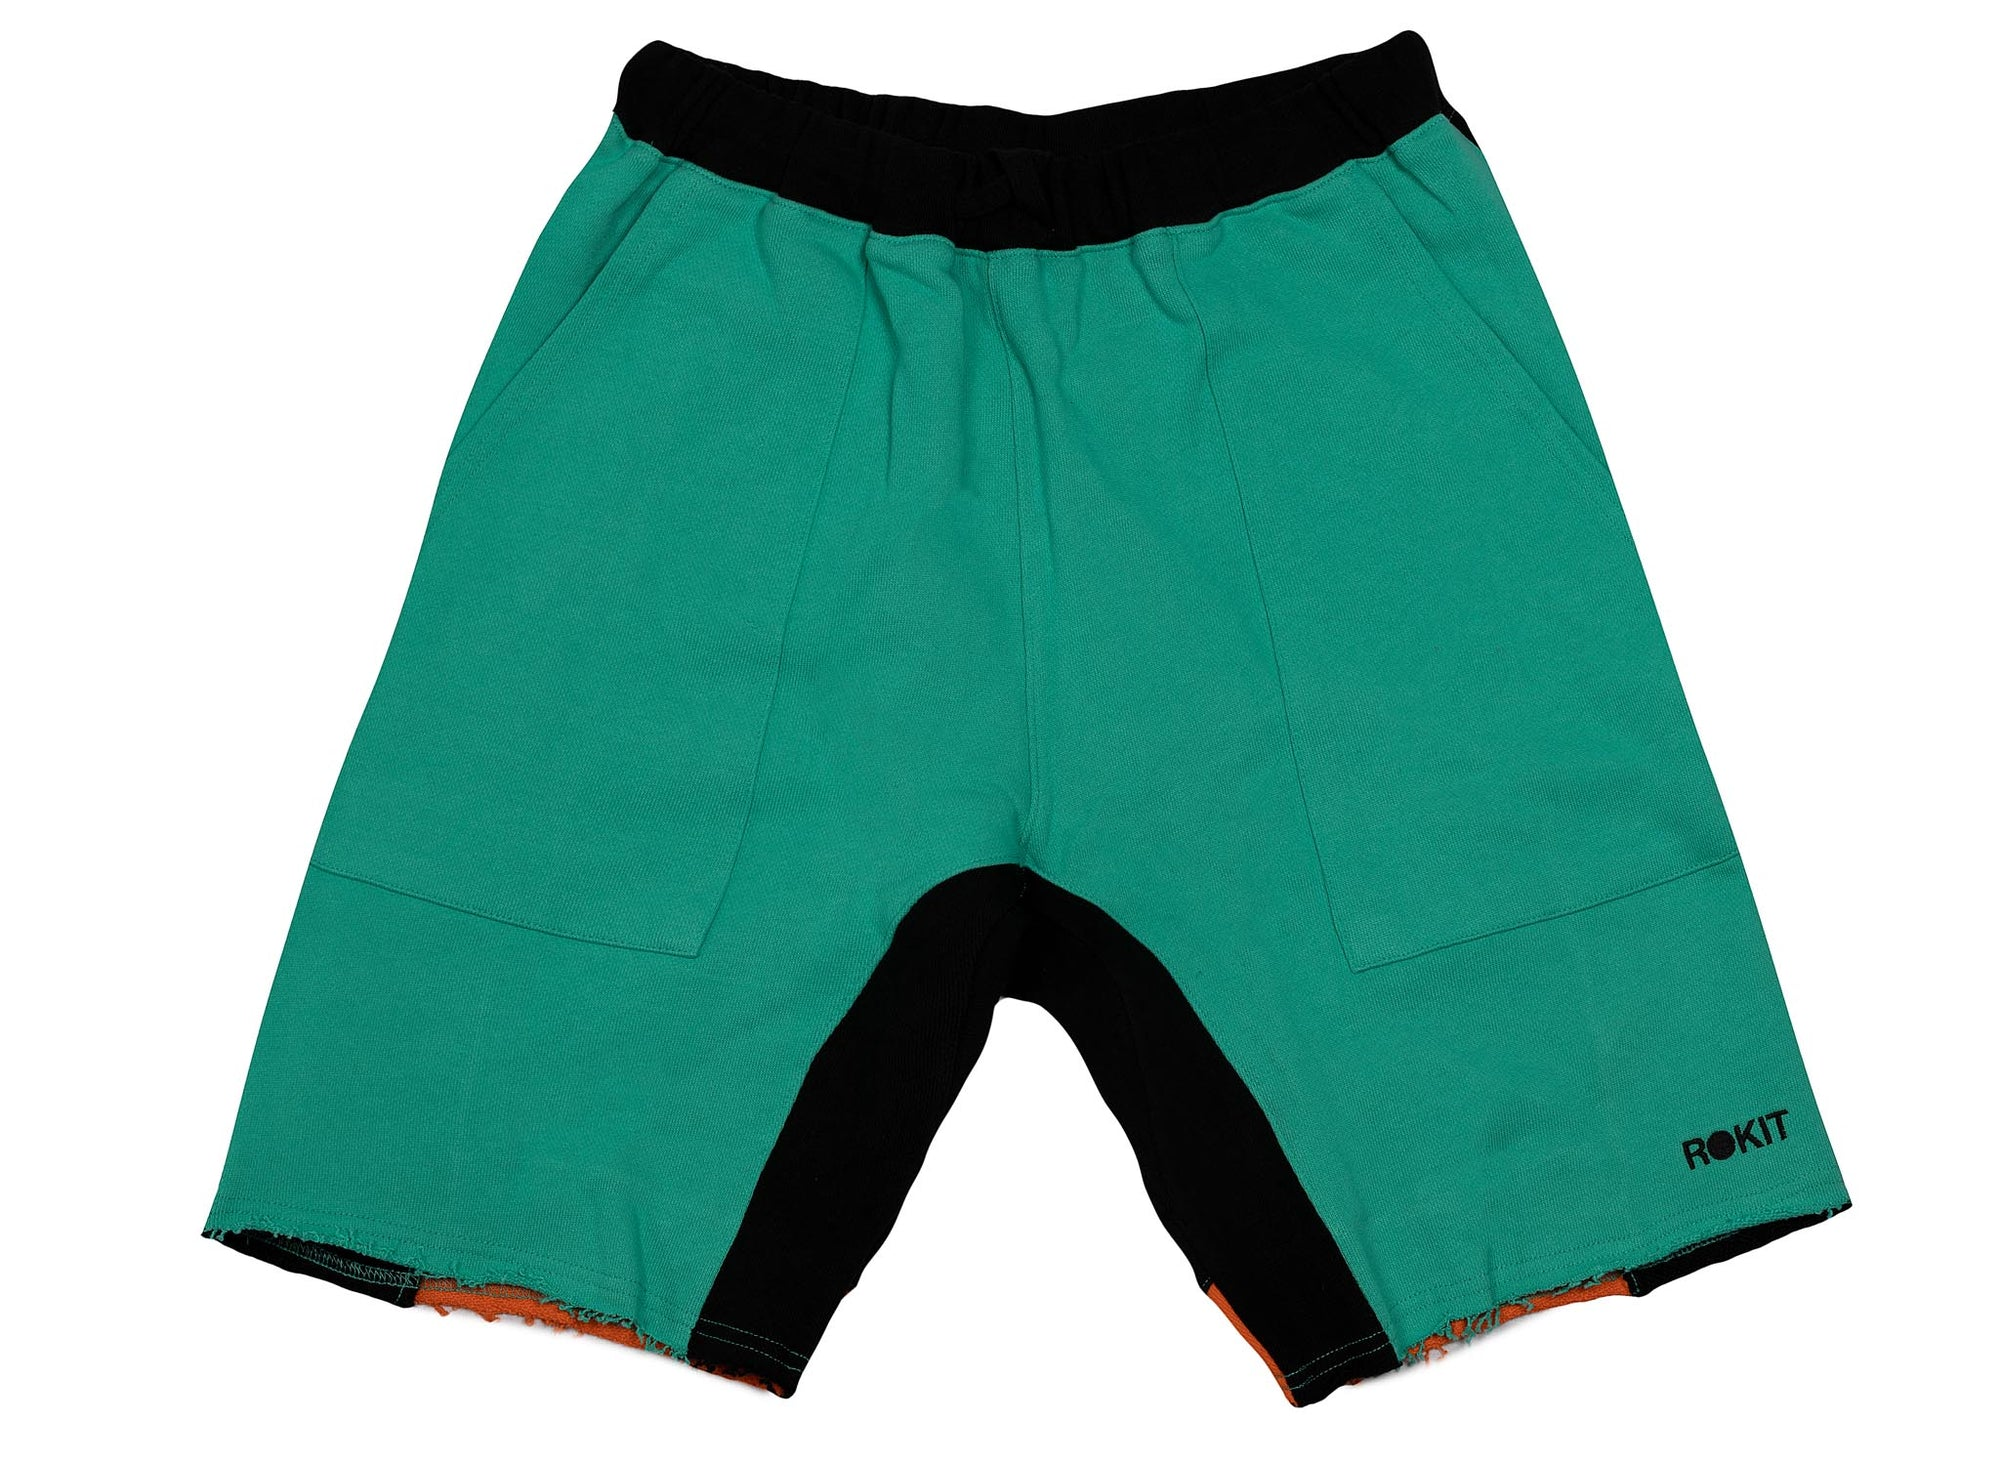 ROKIT the contra shorts